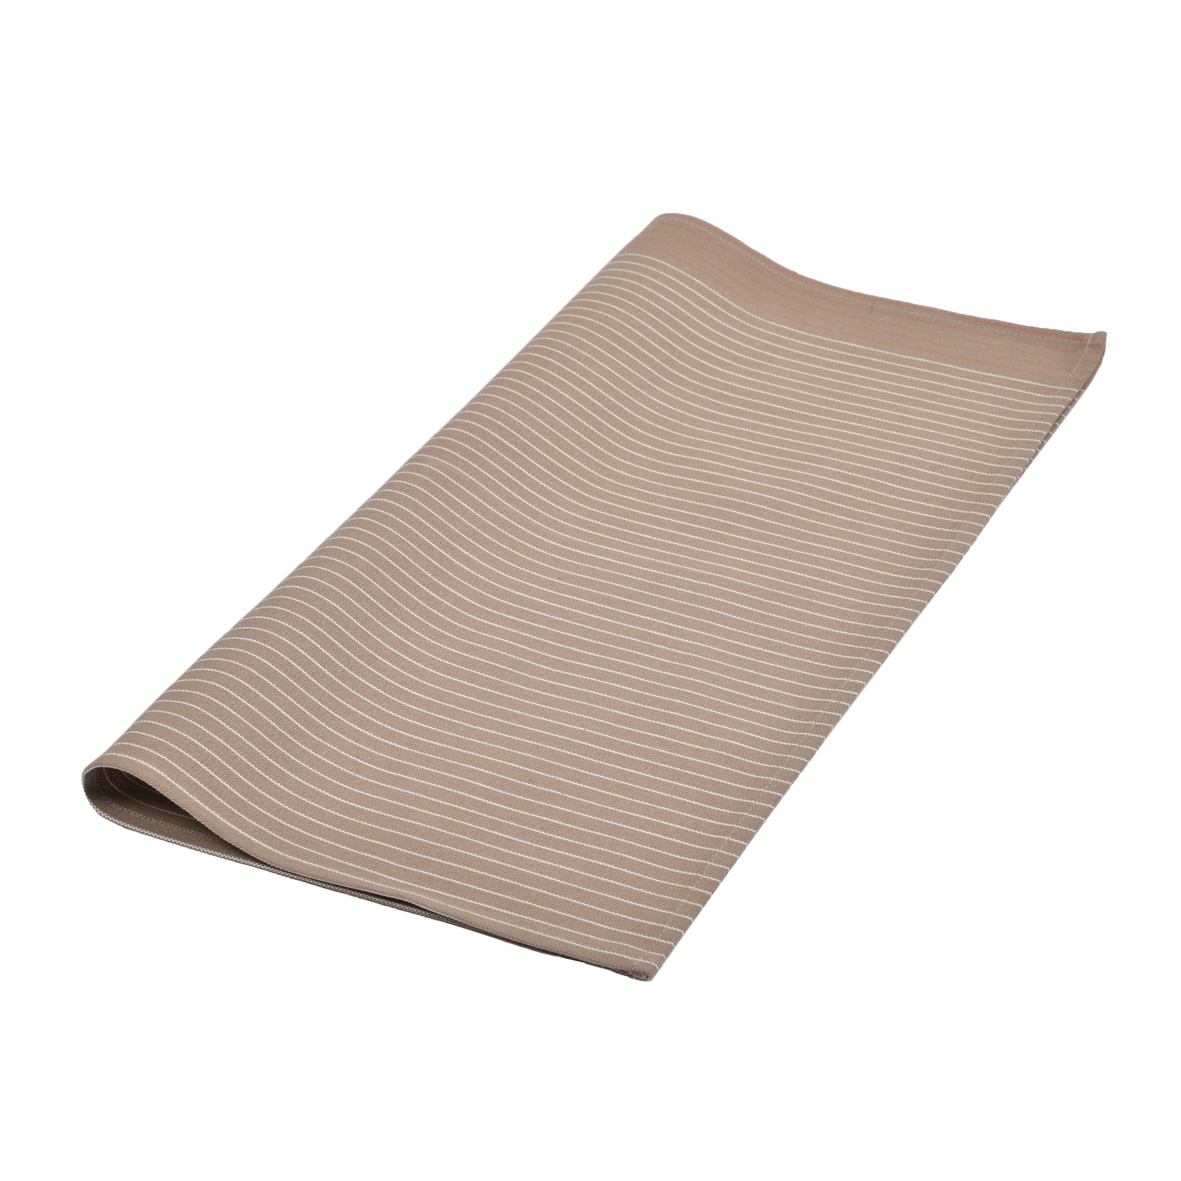 Serviette de table sauvelade mastic artiga - Serviette de table tissu ikea ...